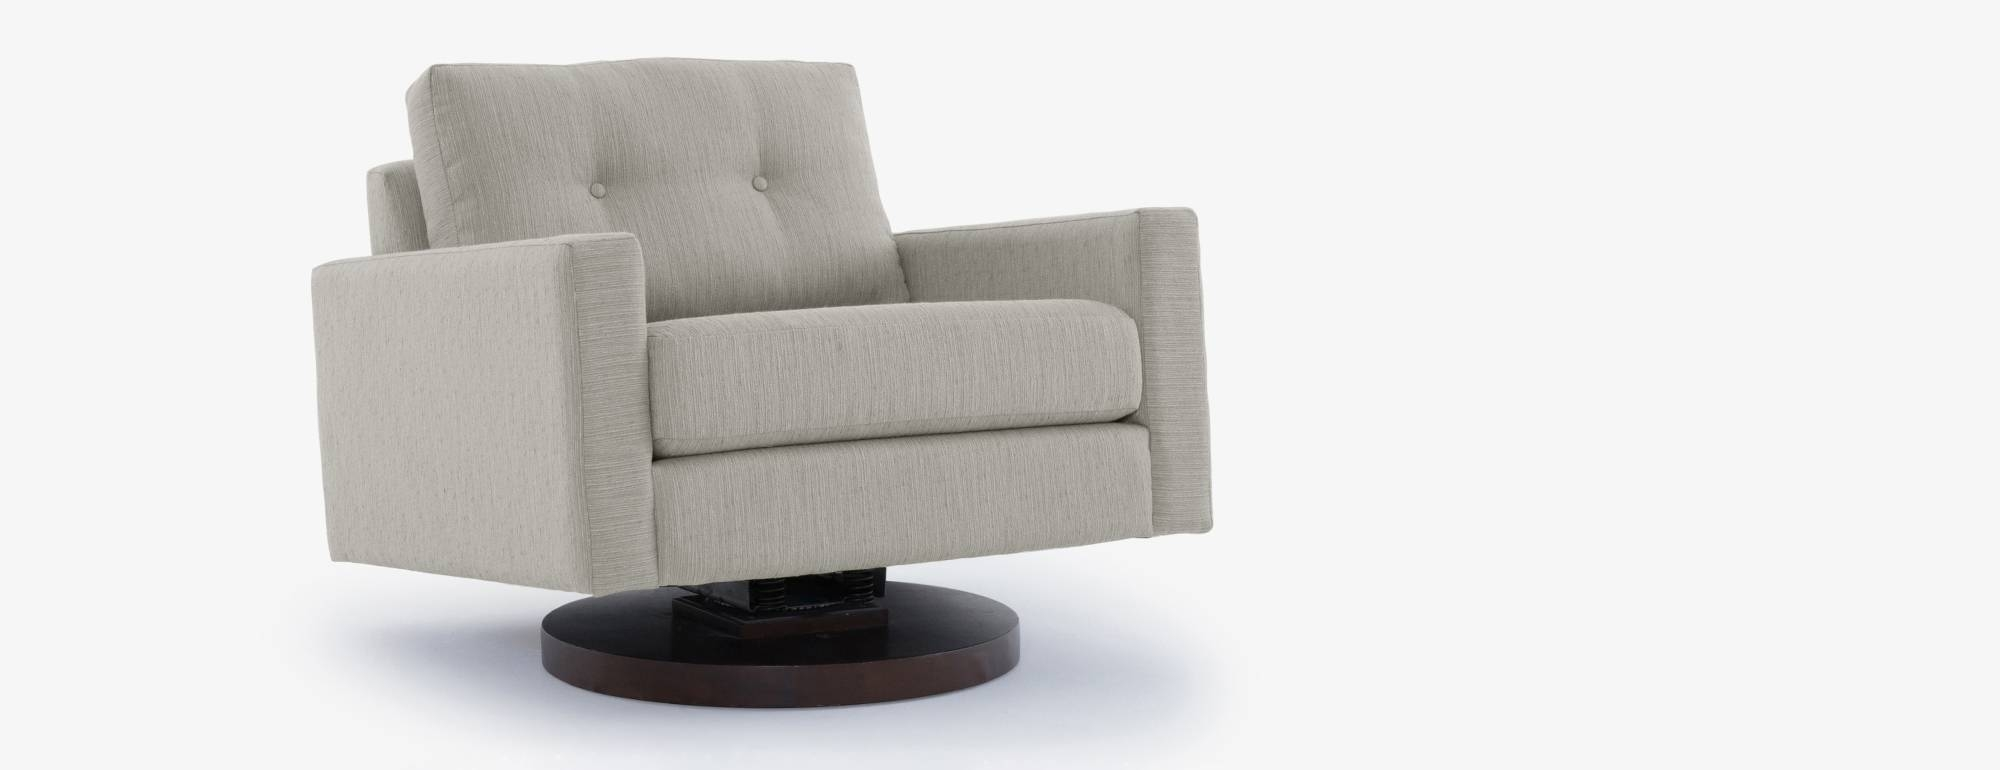 Hopson Rocking Swivel Chair | Joybird for Sofa With Swivel Chair (Image 19 of 30)